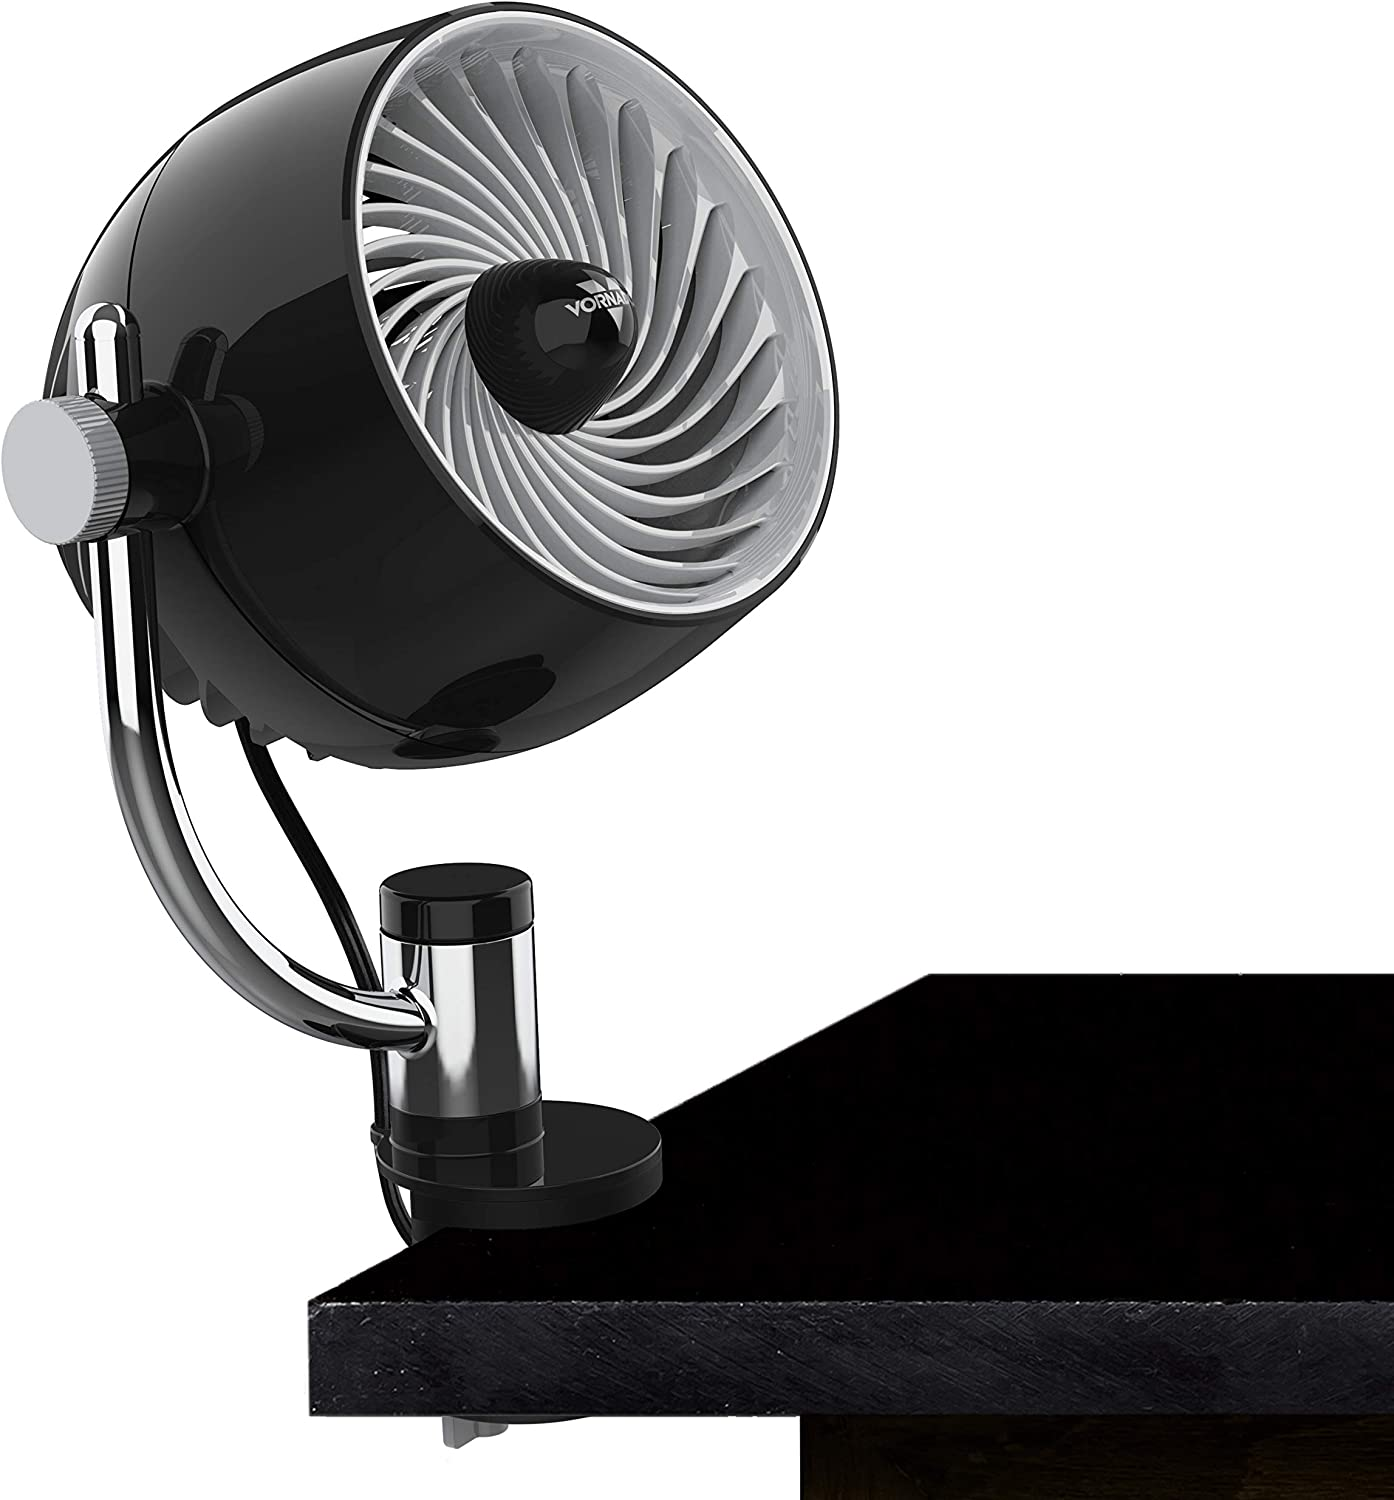 Vornado Pivot3C Compact Air Circulator Clip On Fan with Multi-Surface Mount, Black